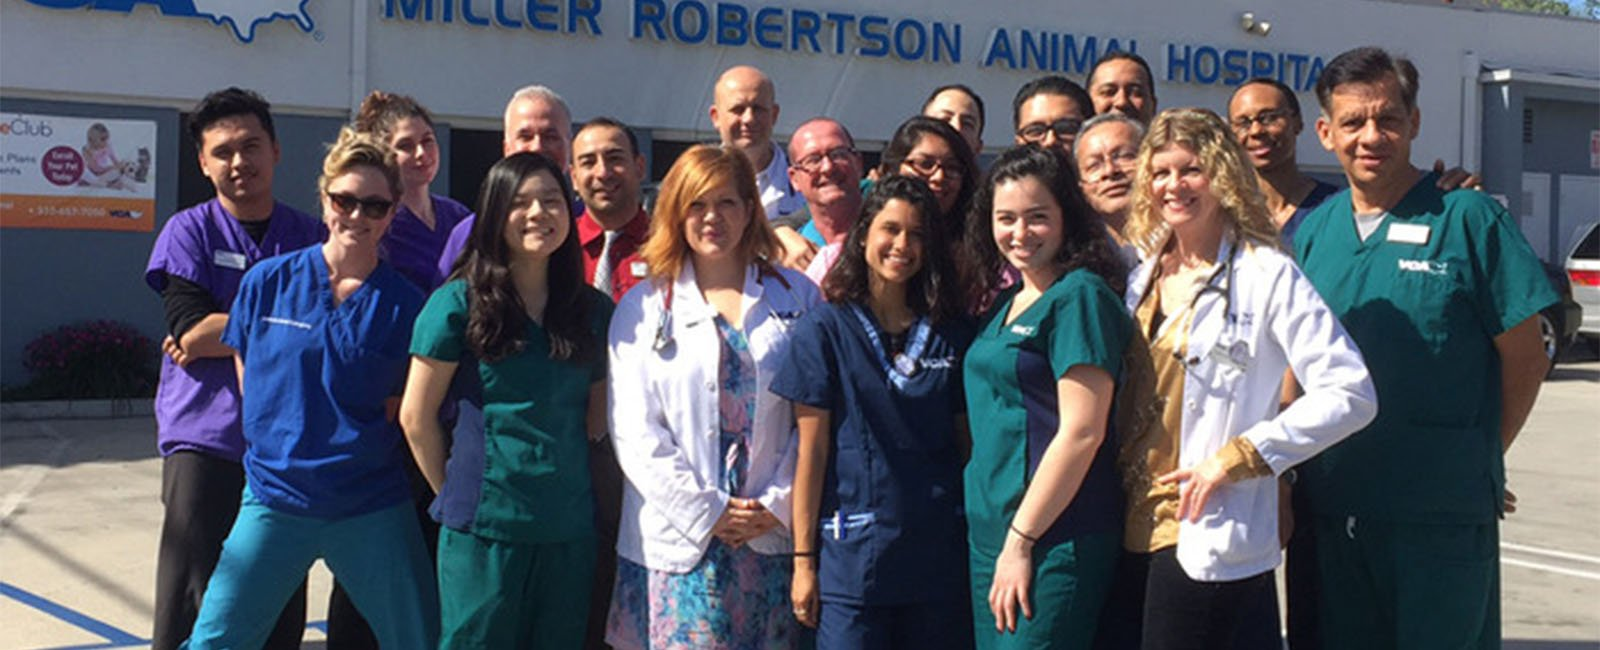 Homepage Team Picture of VCA Miller Robertson Animal Hospital